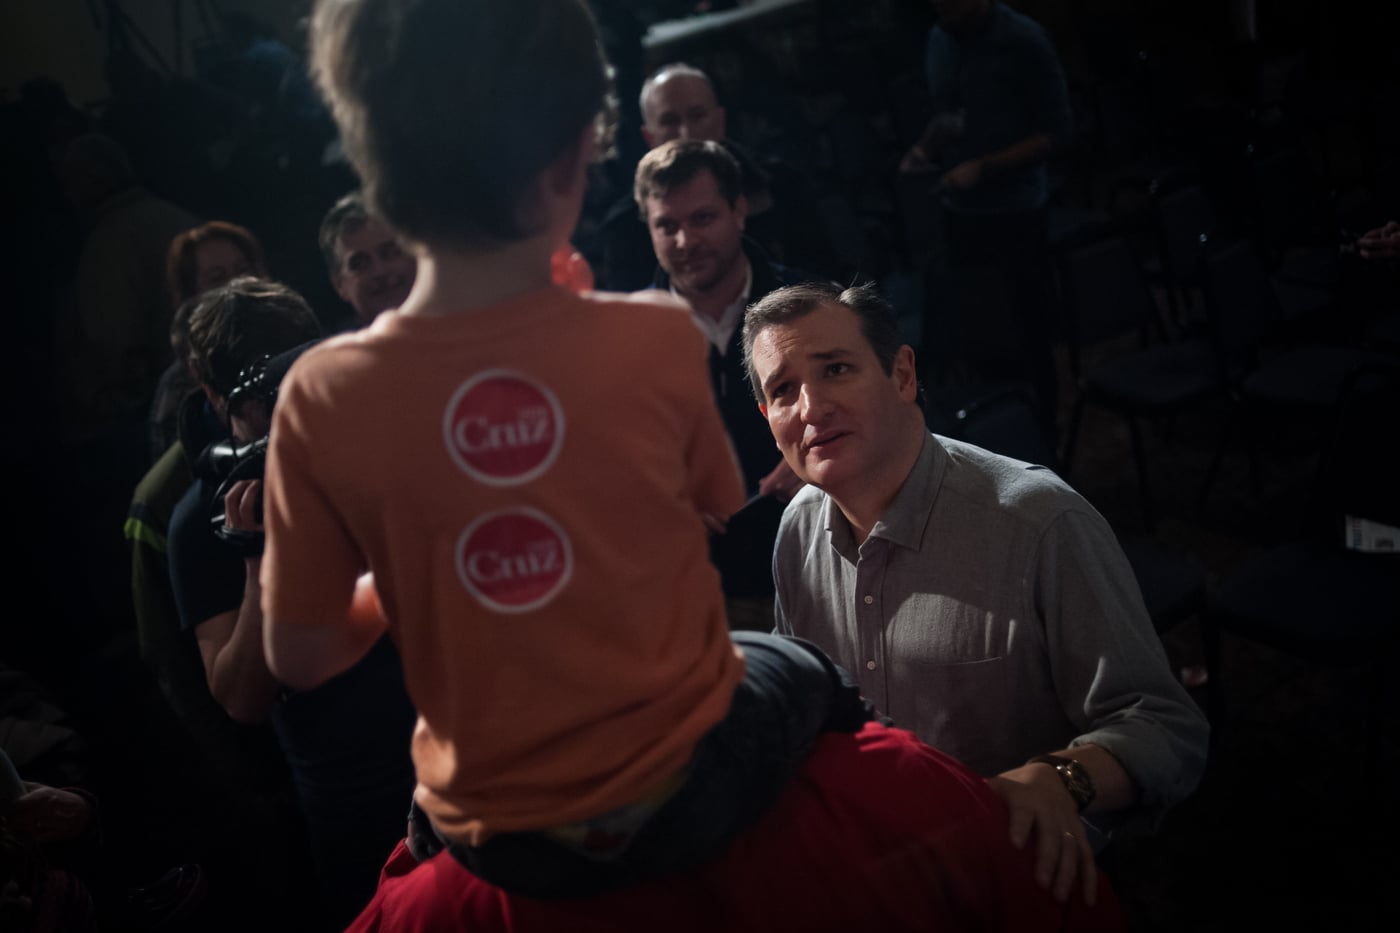 U.S. Republican presidential candidate Ted Cruz talks to Oliver Jensen, 5, as he sits on the shoulders of his father Ryan Jensen after a campaign event at Clay County Regional Event Center Ballroom in Spencer, Iowa January 6, 2016. REUTERS/Mark Kauzlarich